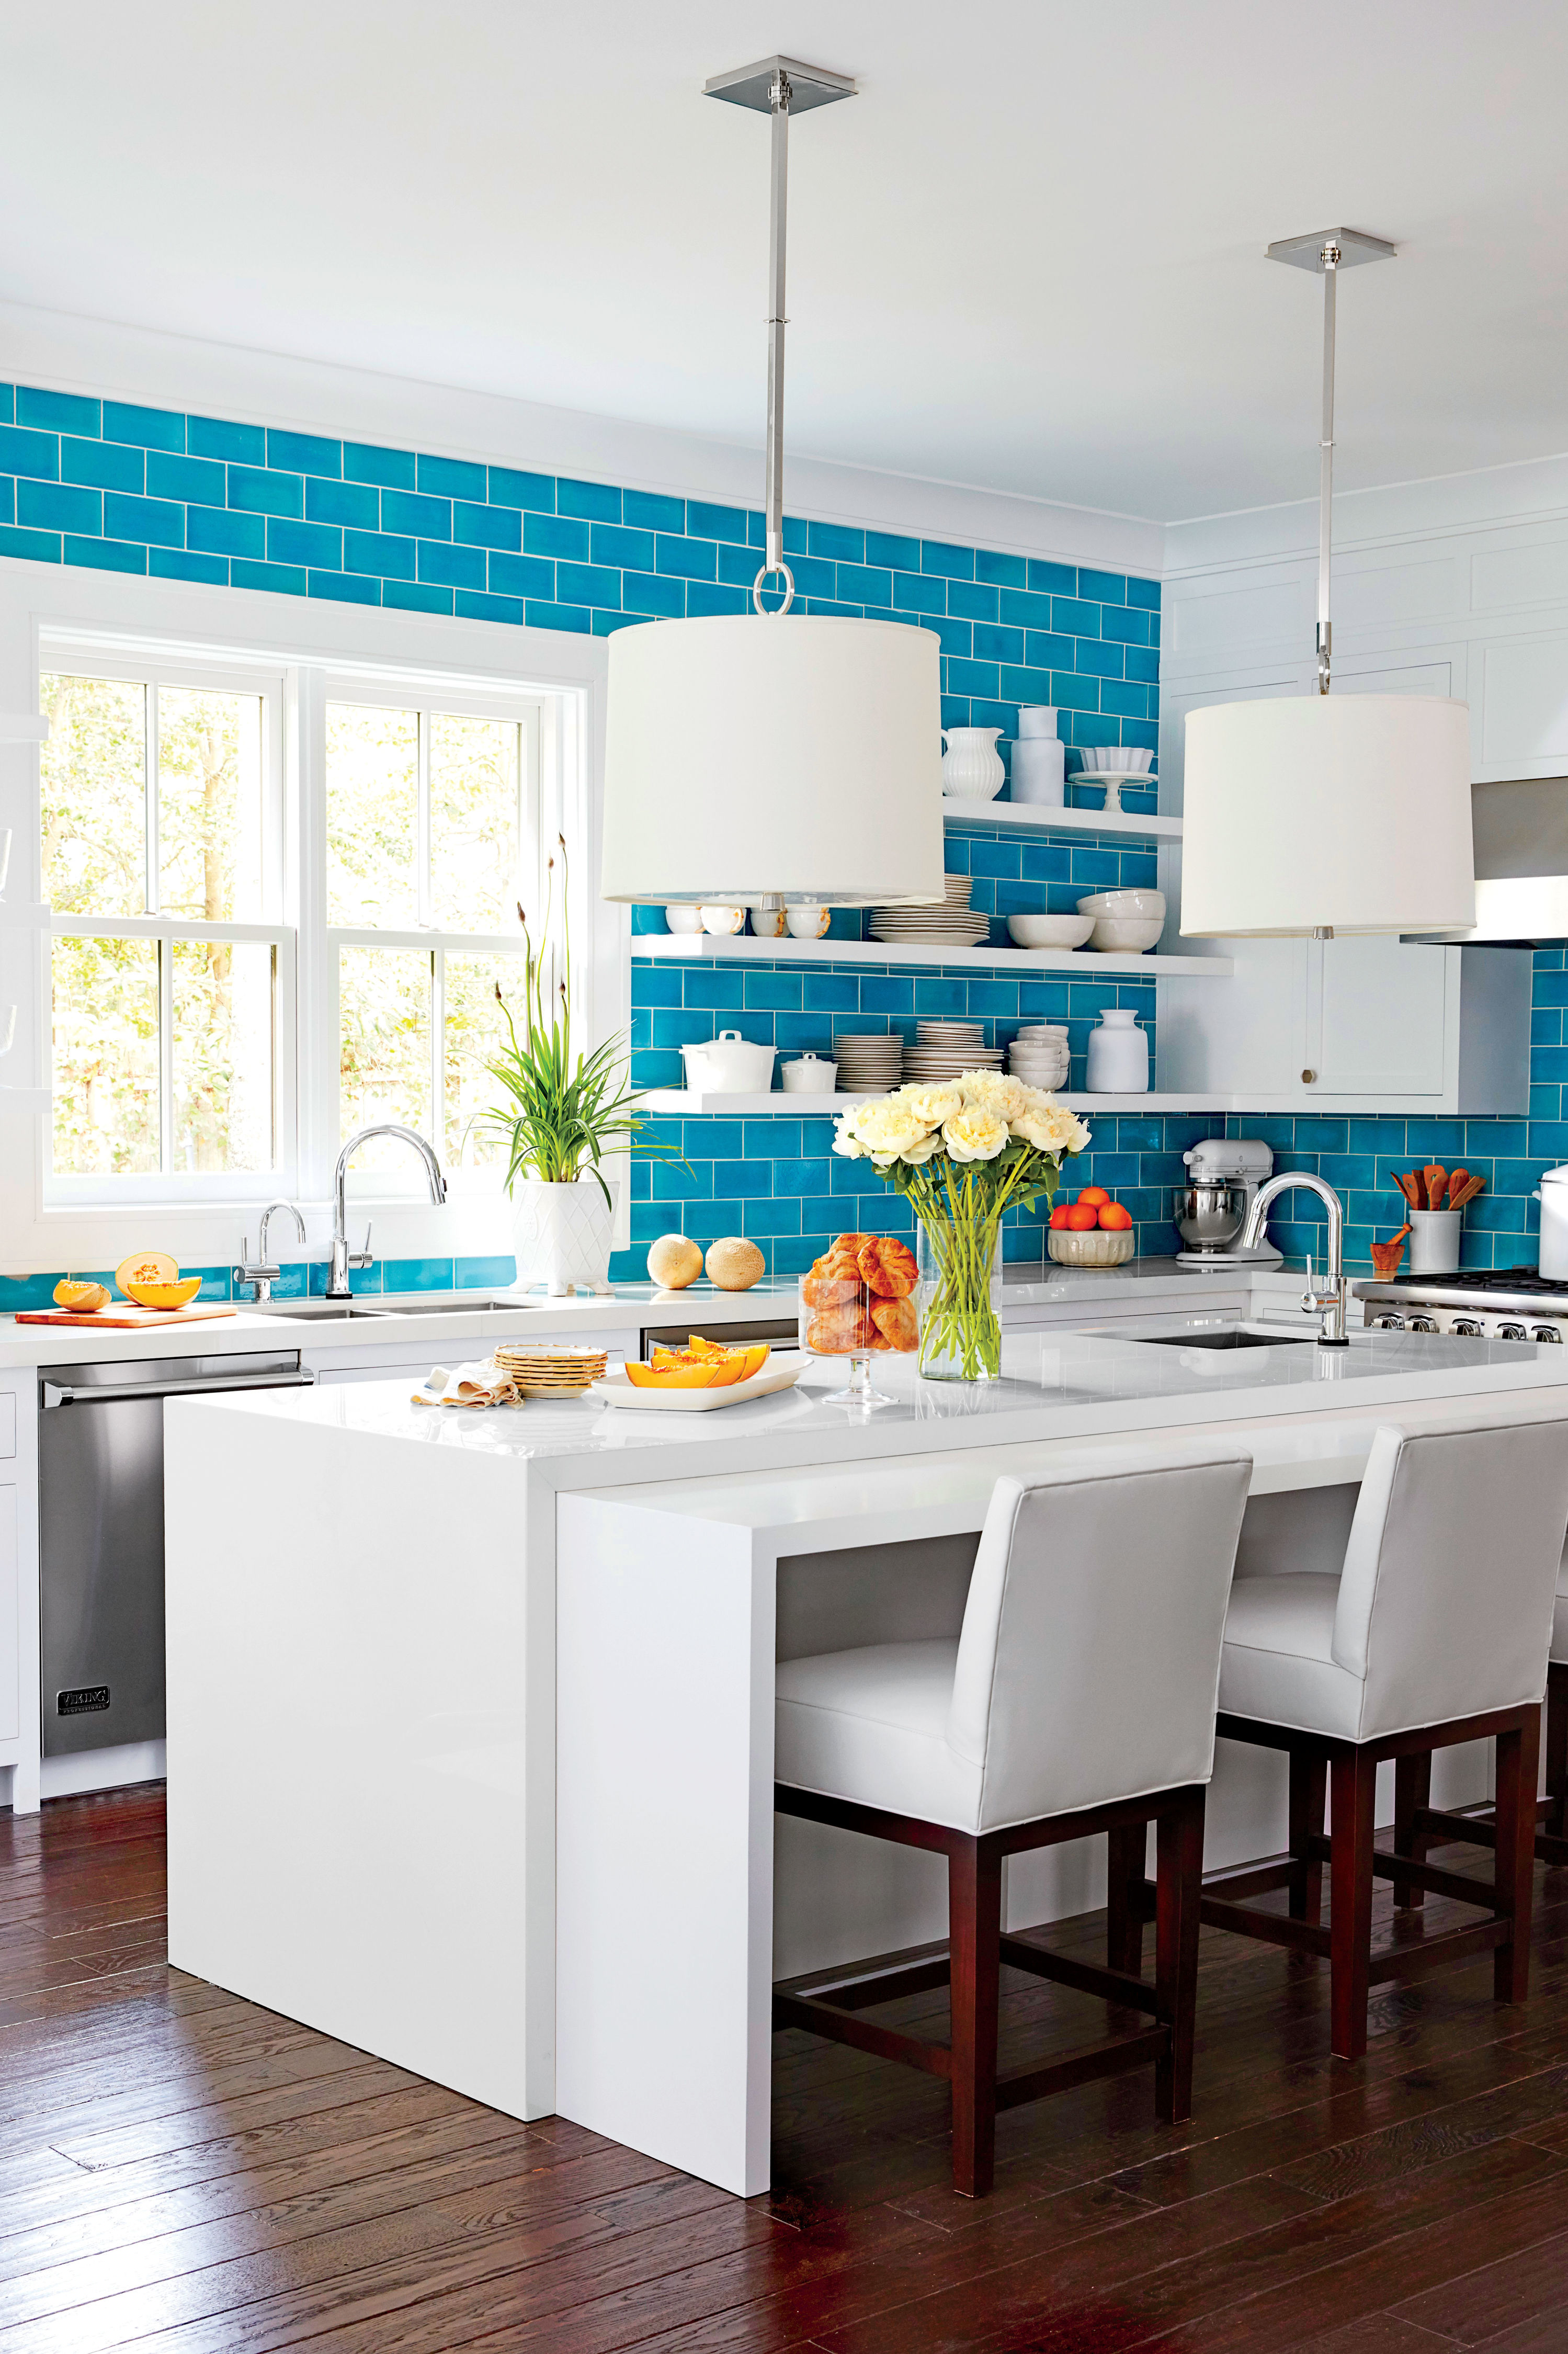 What Everyone Should Know About The All-White Kitchen